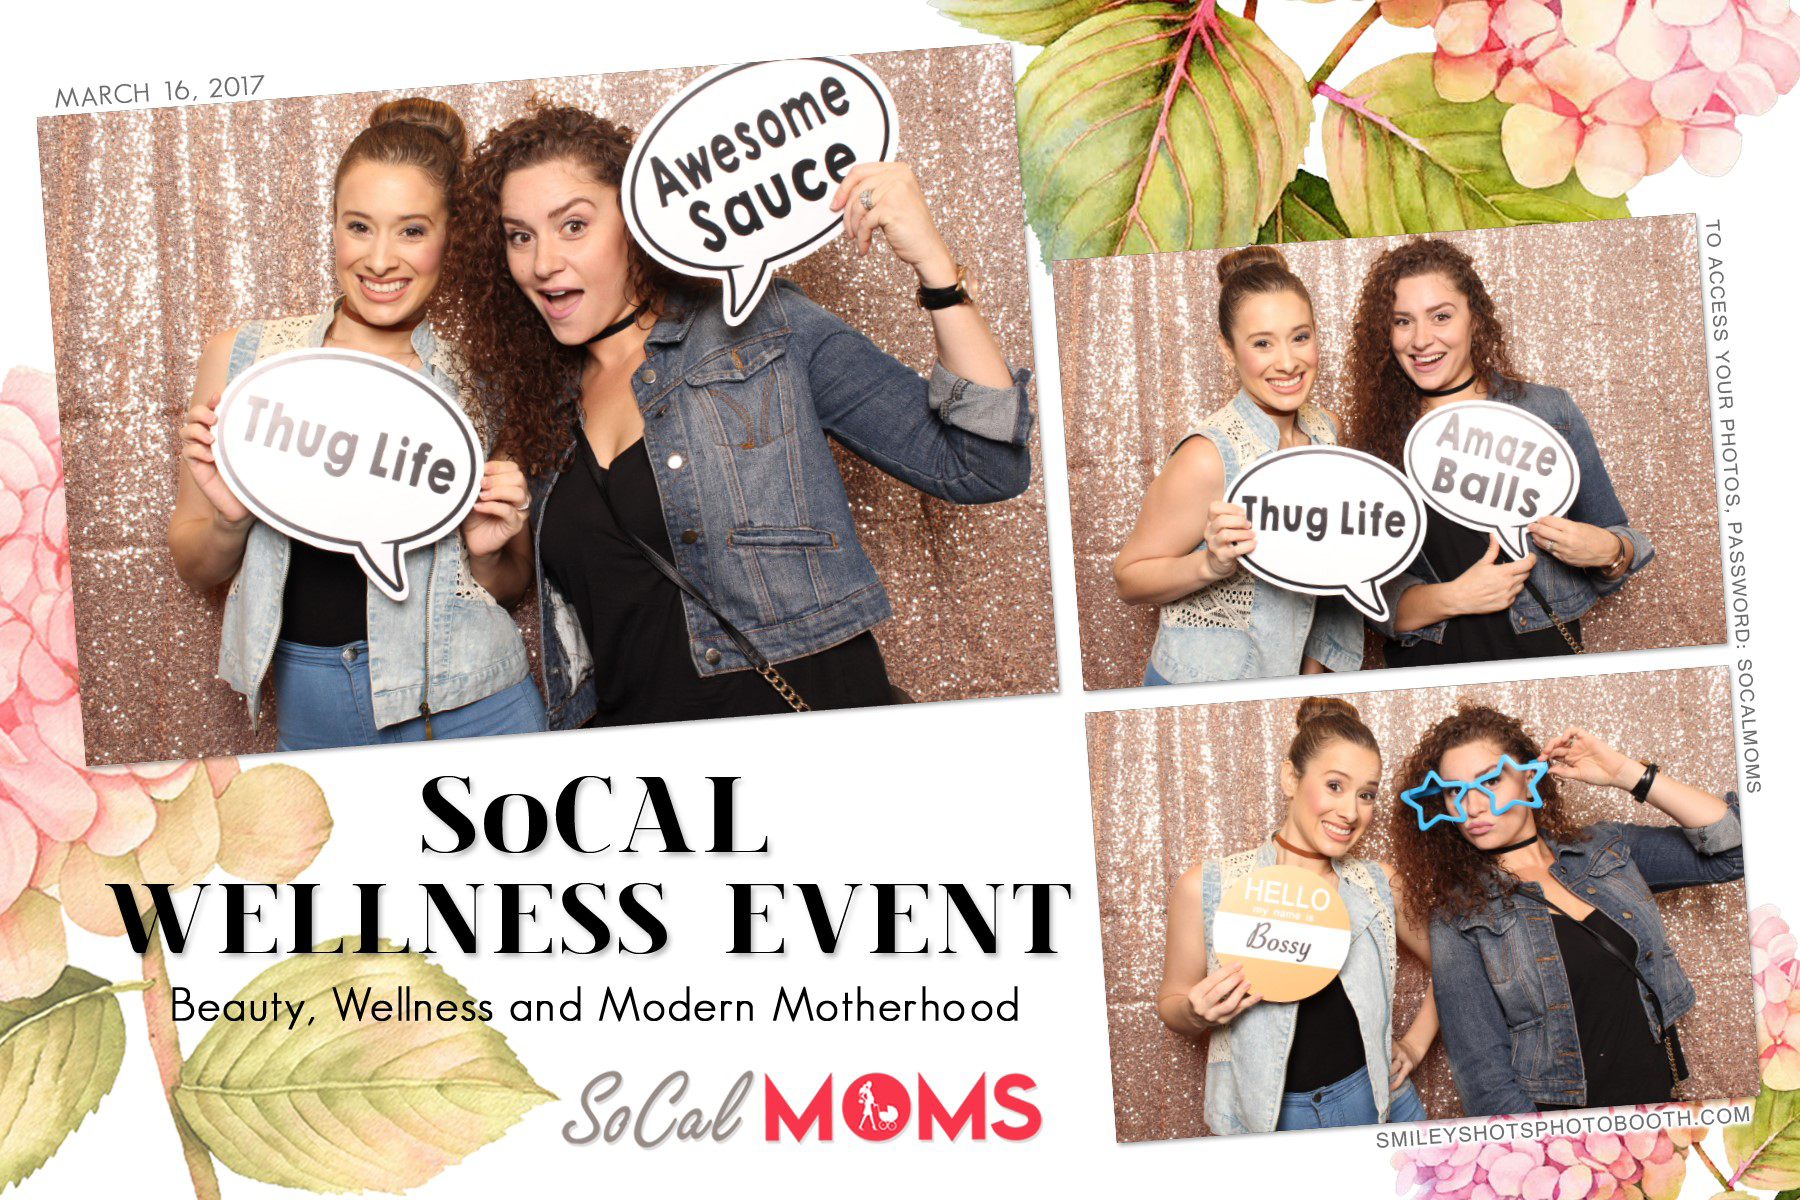 Socal Wellness Event Socal Moms Smiley Shots Photo Booth Photobooth (1).png